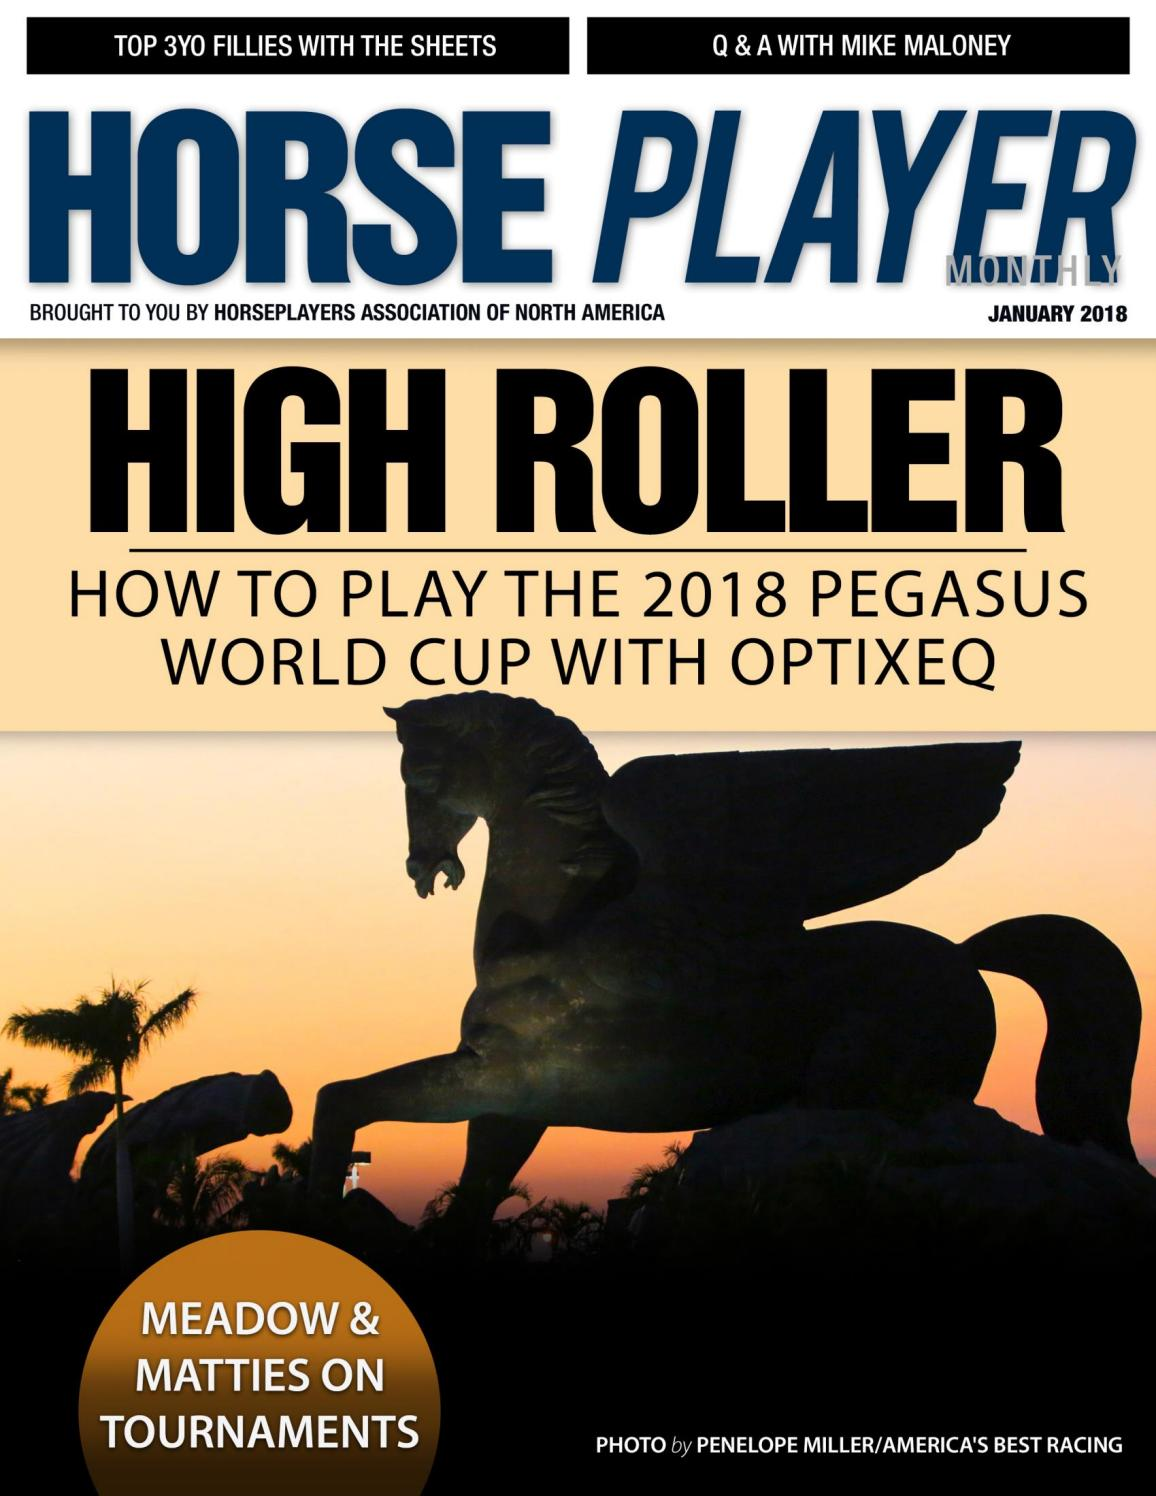 January 2018 issue of Horseplayer Monthly - from the